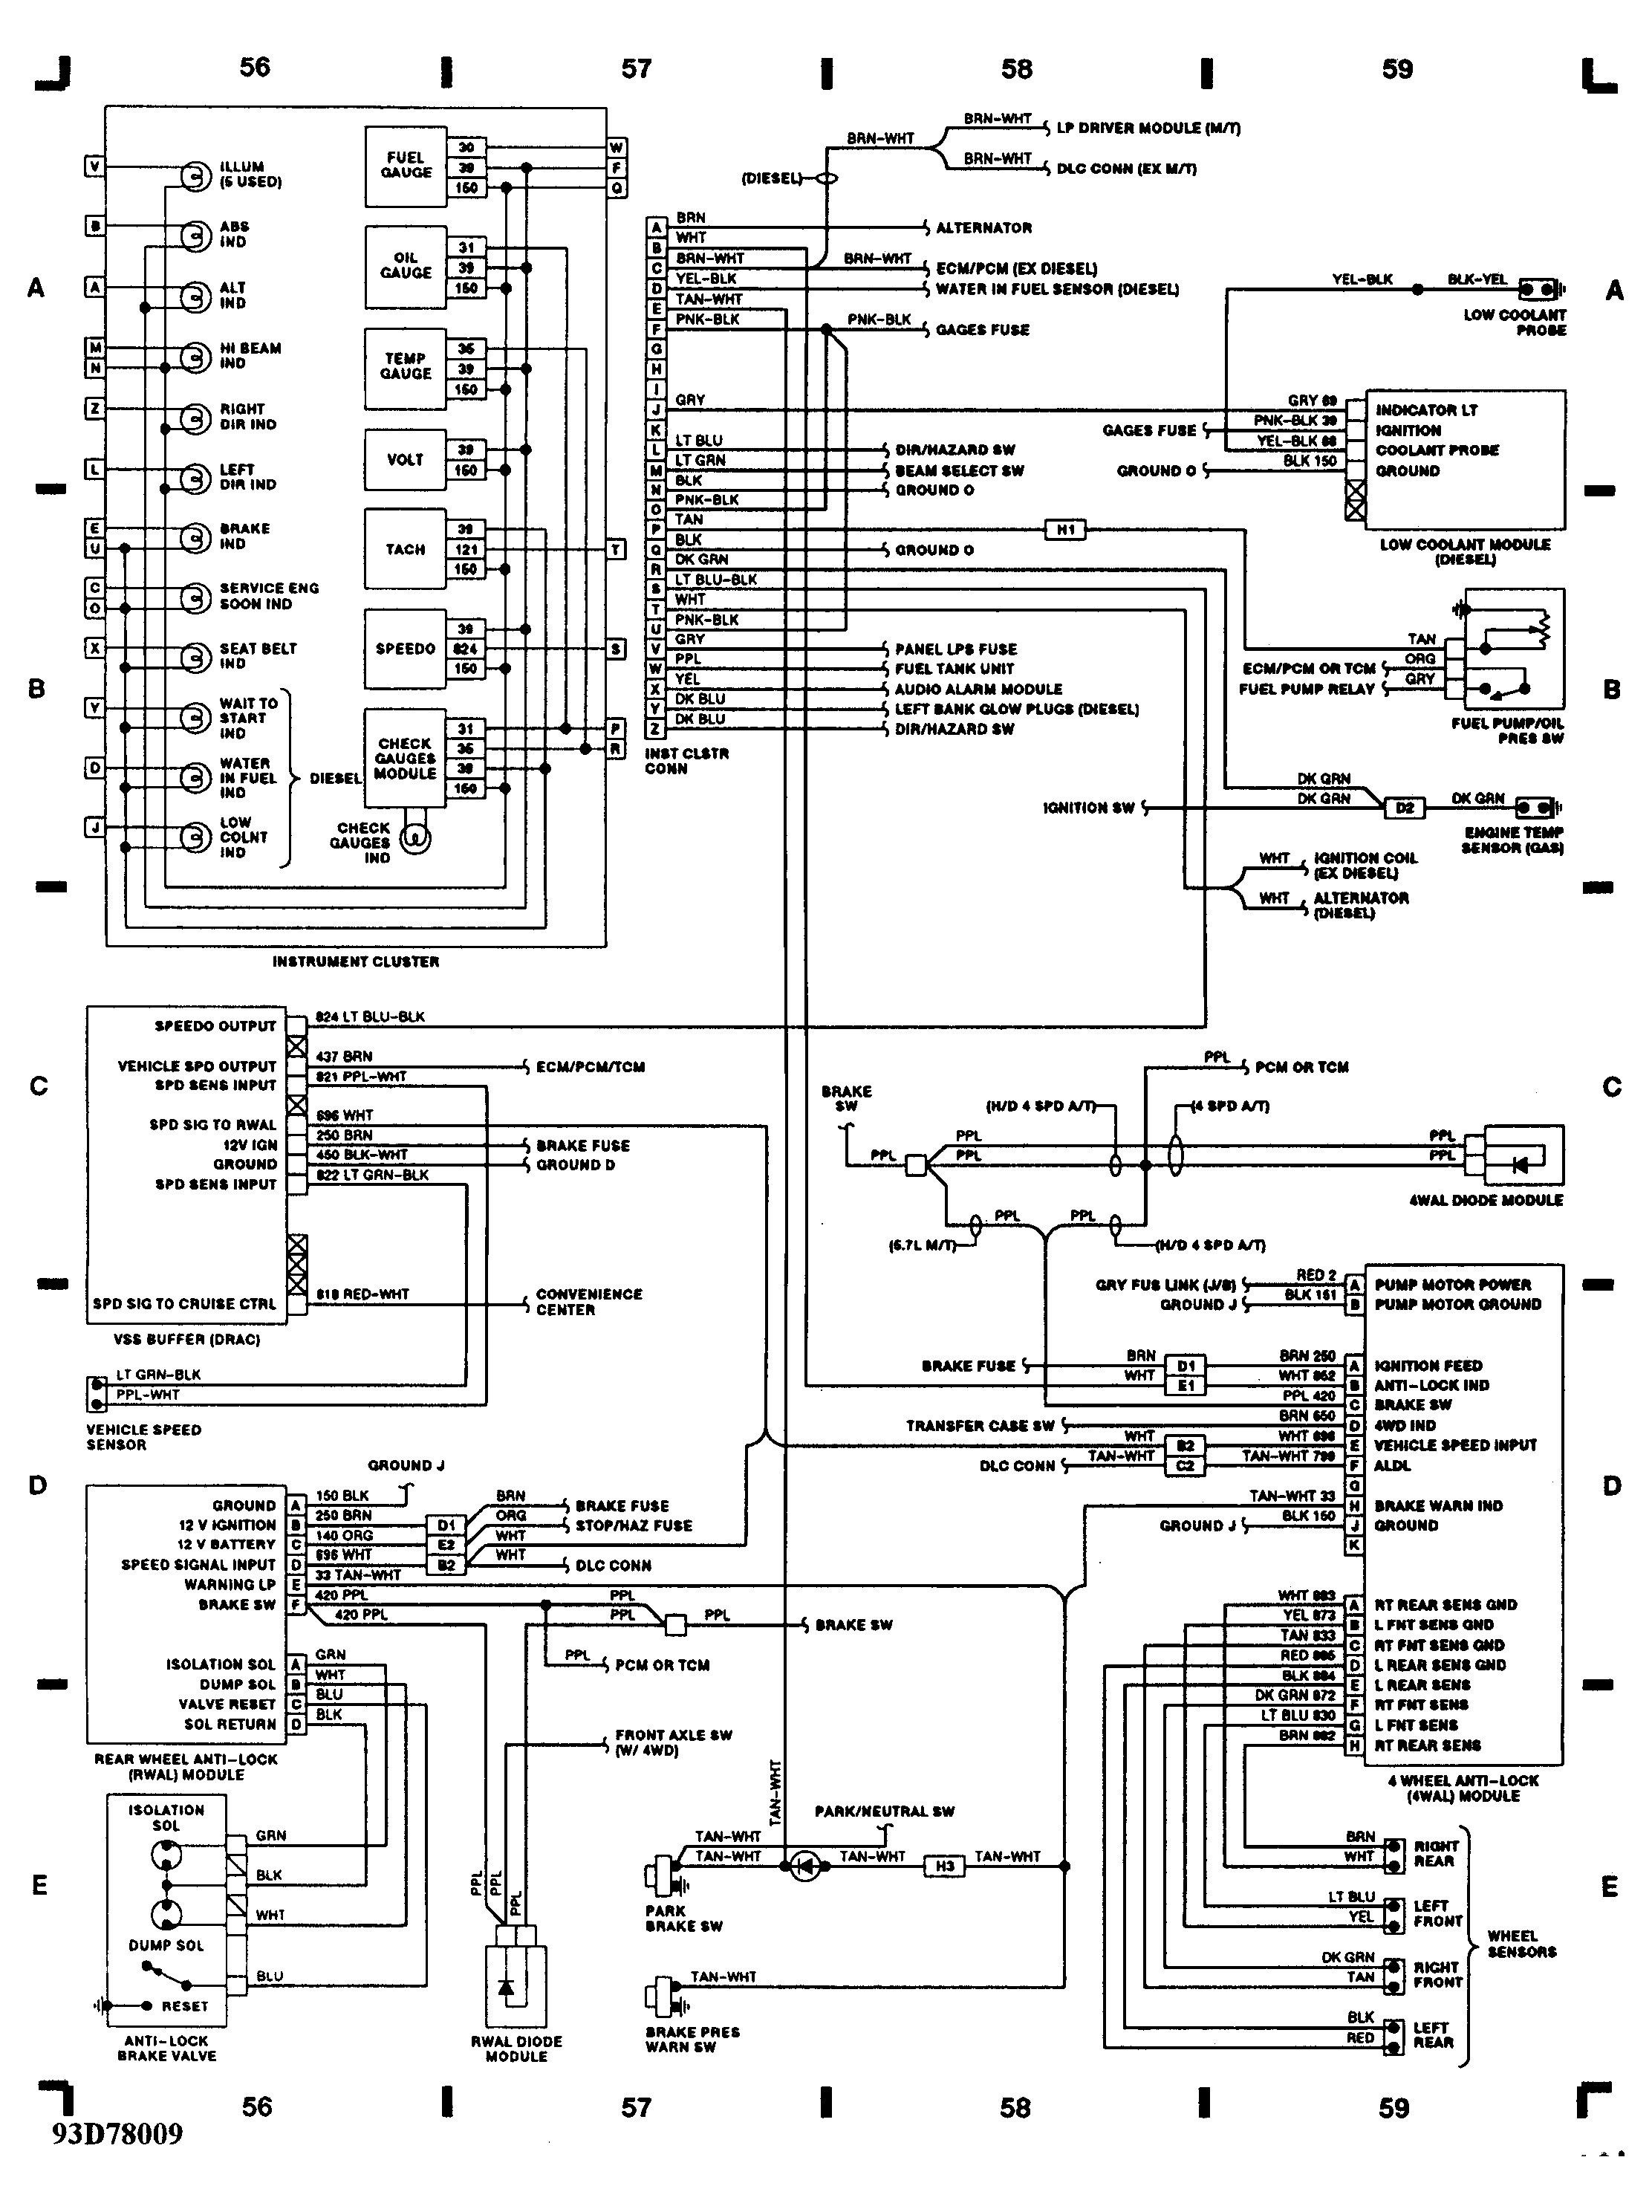 1979 Chevy Truck Wiring Diagram Collection 1993 Chevy Silverado Wiring Harness Wiring Diagram For Light Switch In 2021 Diagram Chevy Trucks 1979 Chevy Truck